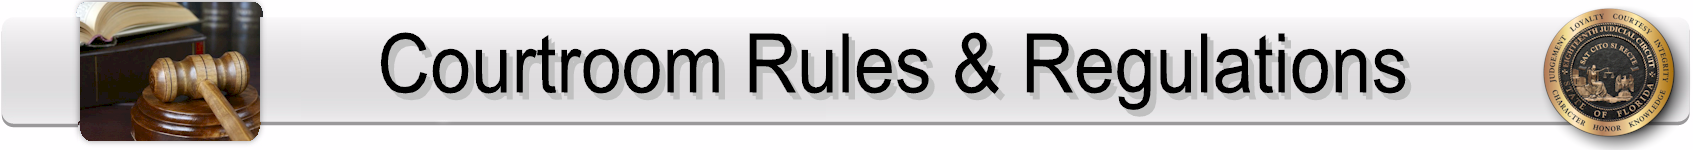 Courtroom Rules and Regulations Page Banner